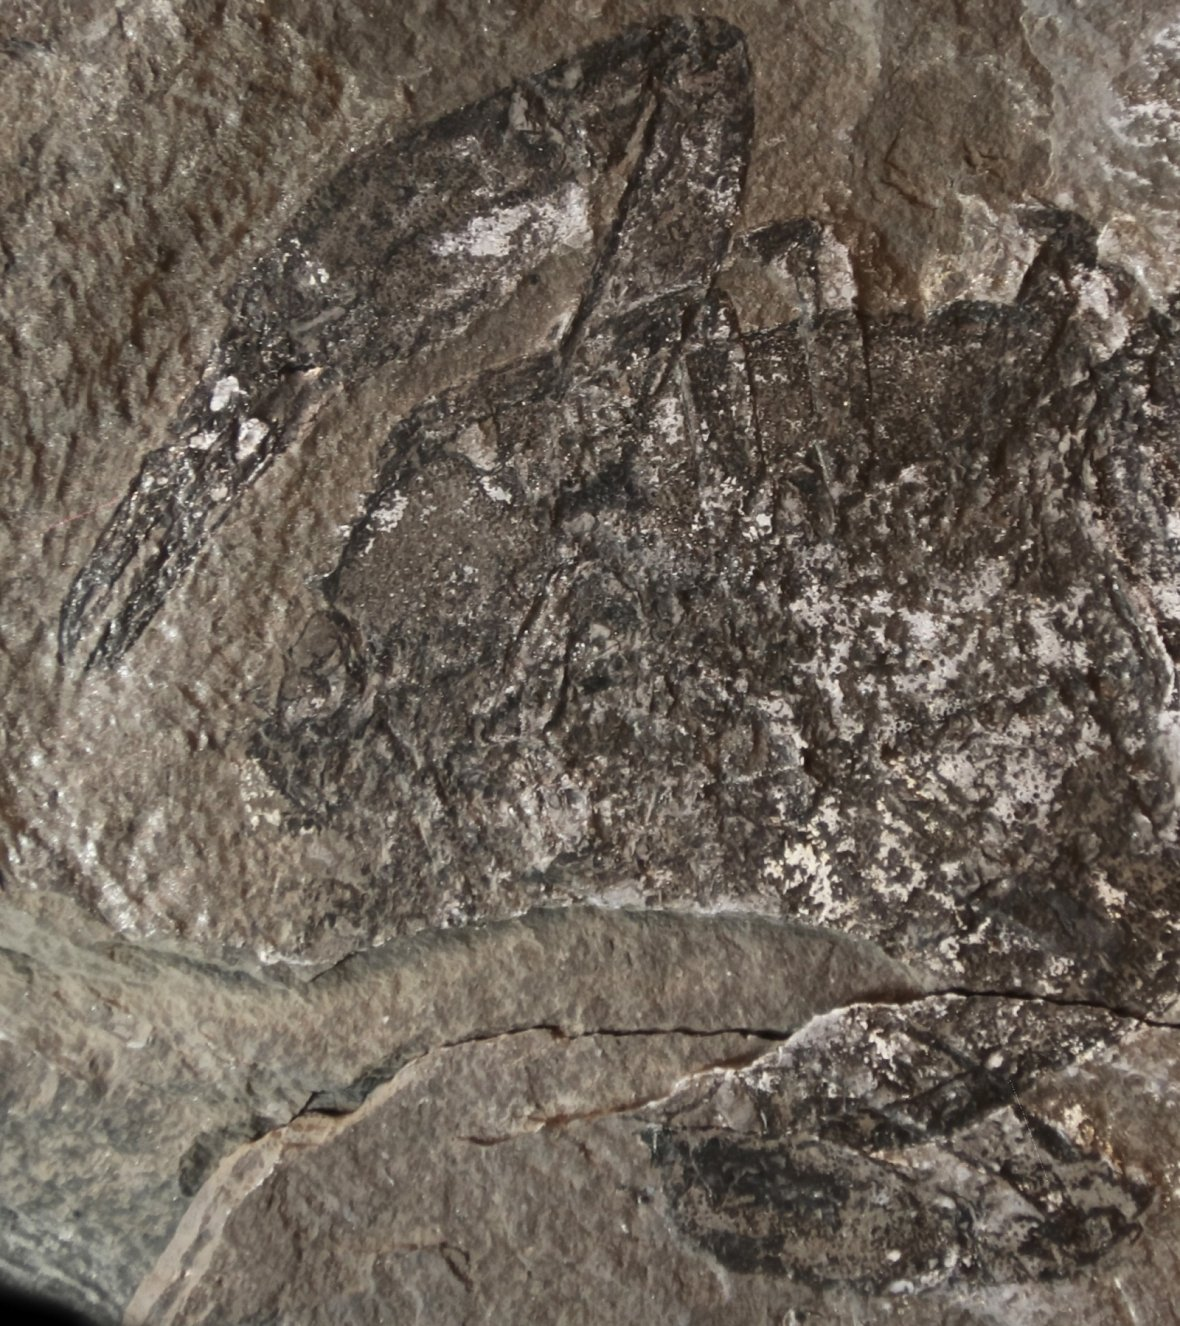 Lobster fossil